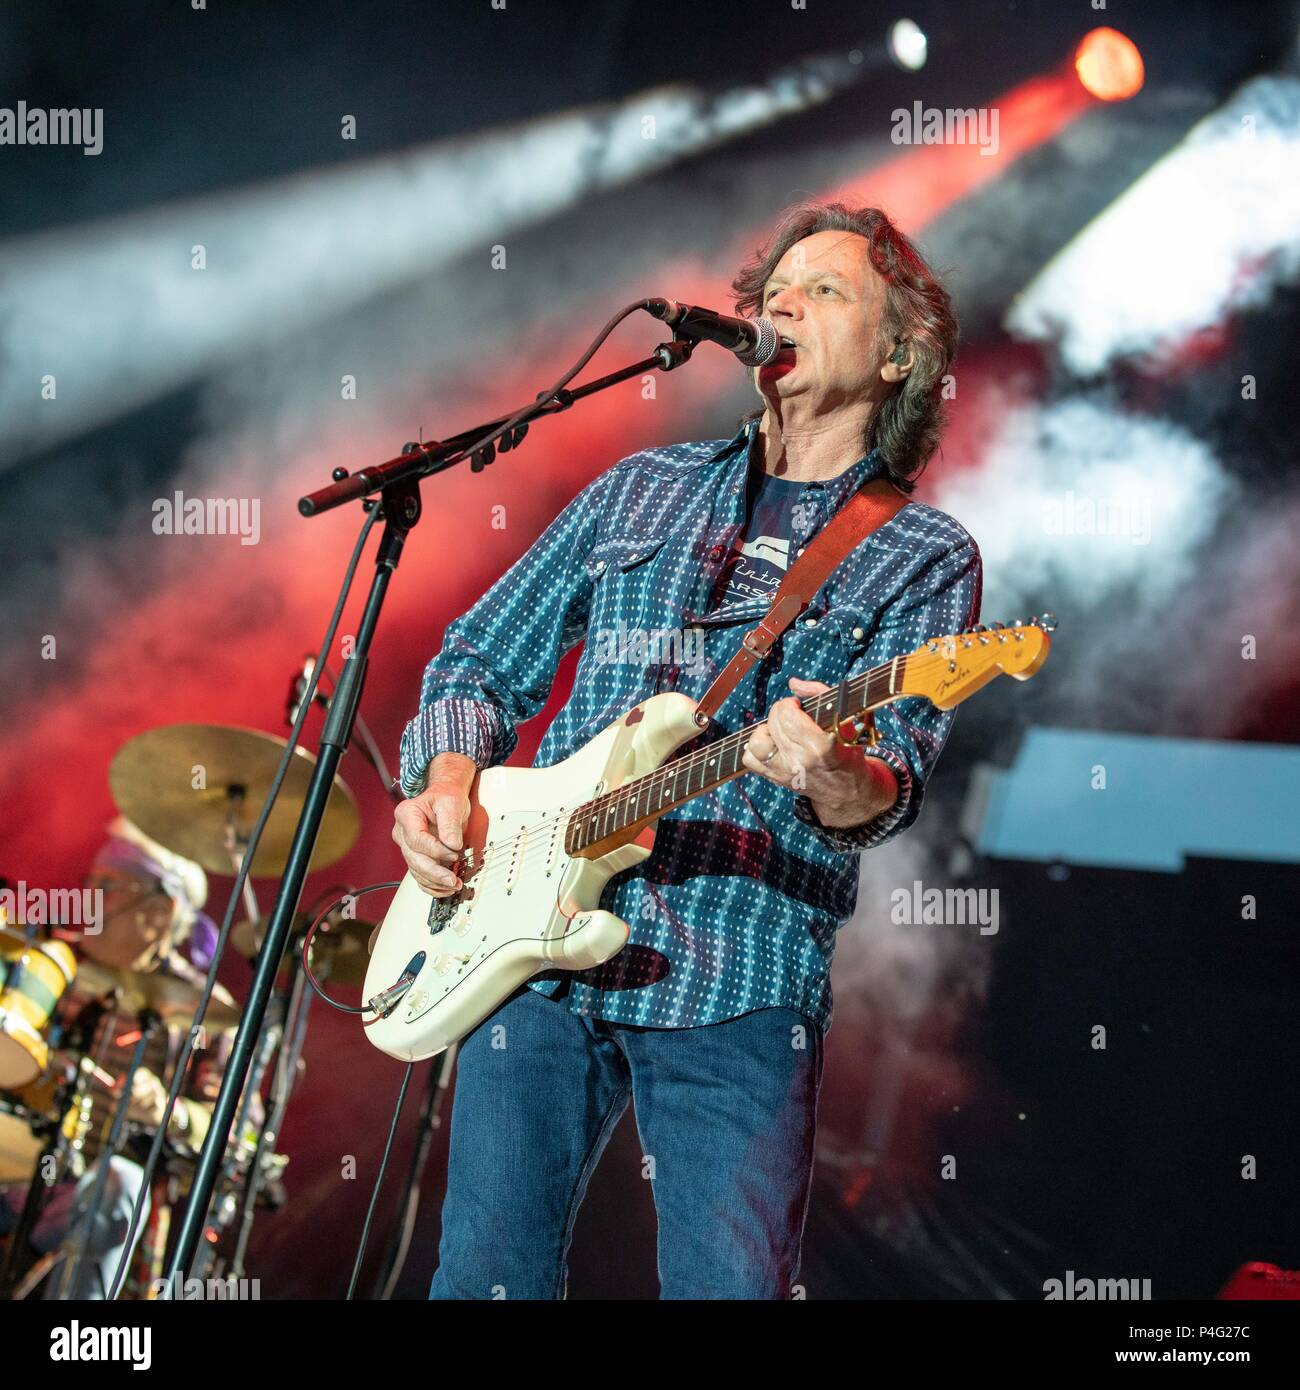 Nitty Gritty Dirt Band Stock Photos & Nitty Gritty Dirt Band Stock ...